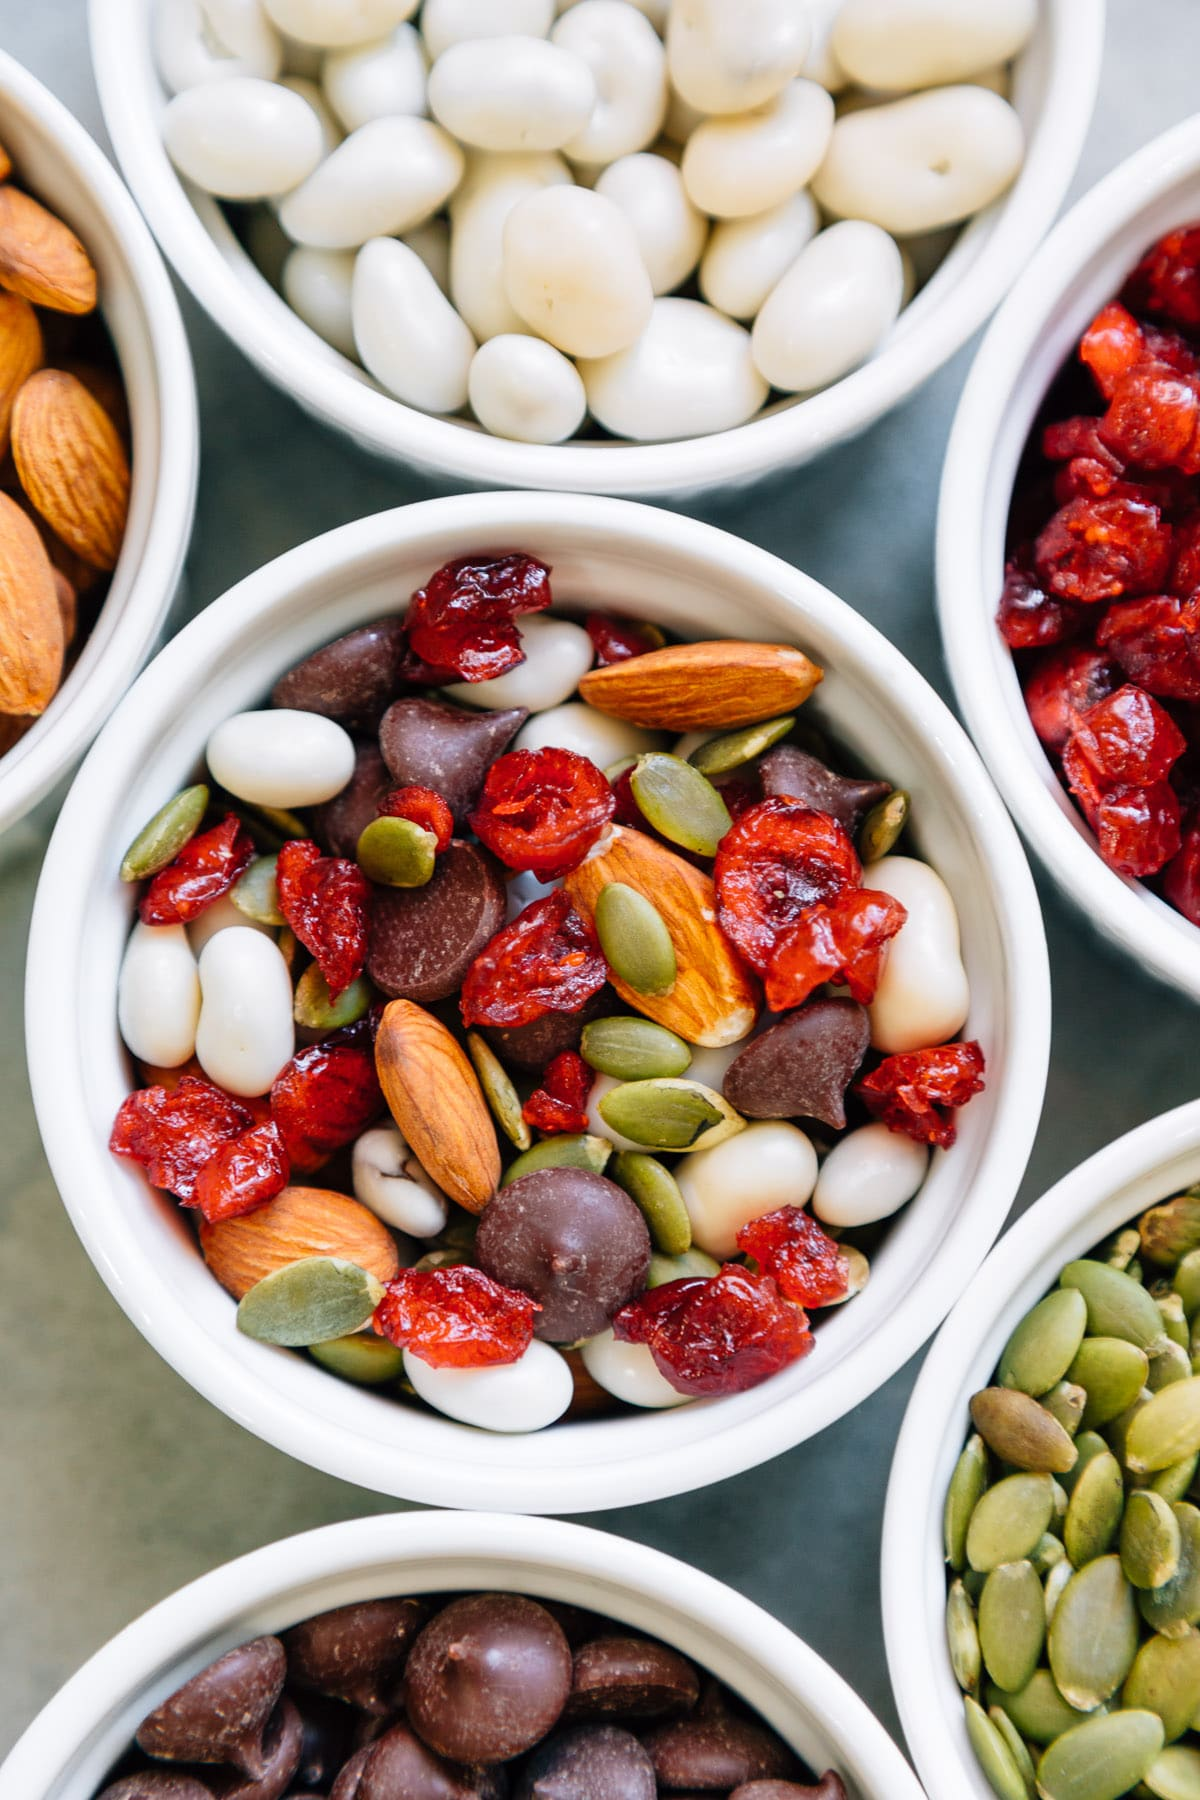 5 minutes and 5 ingredients are all you need to make this Festive Trail Mix!